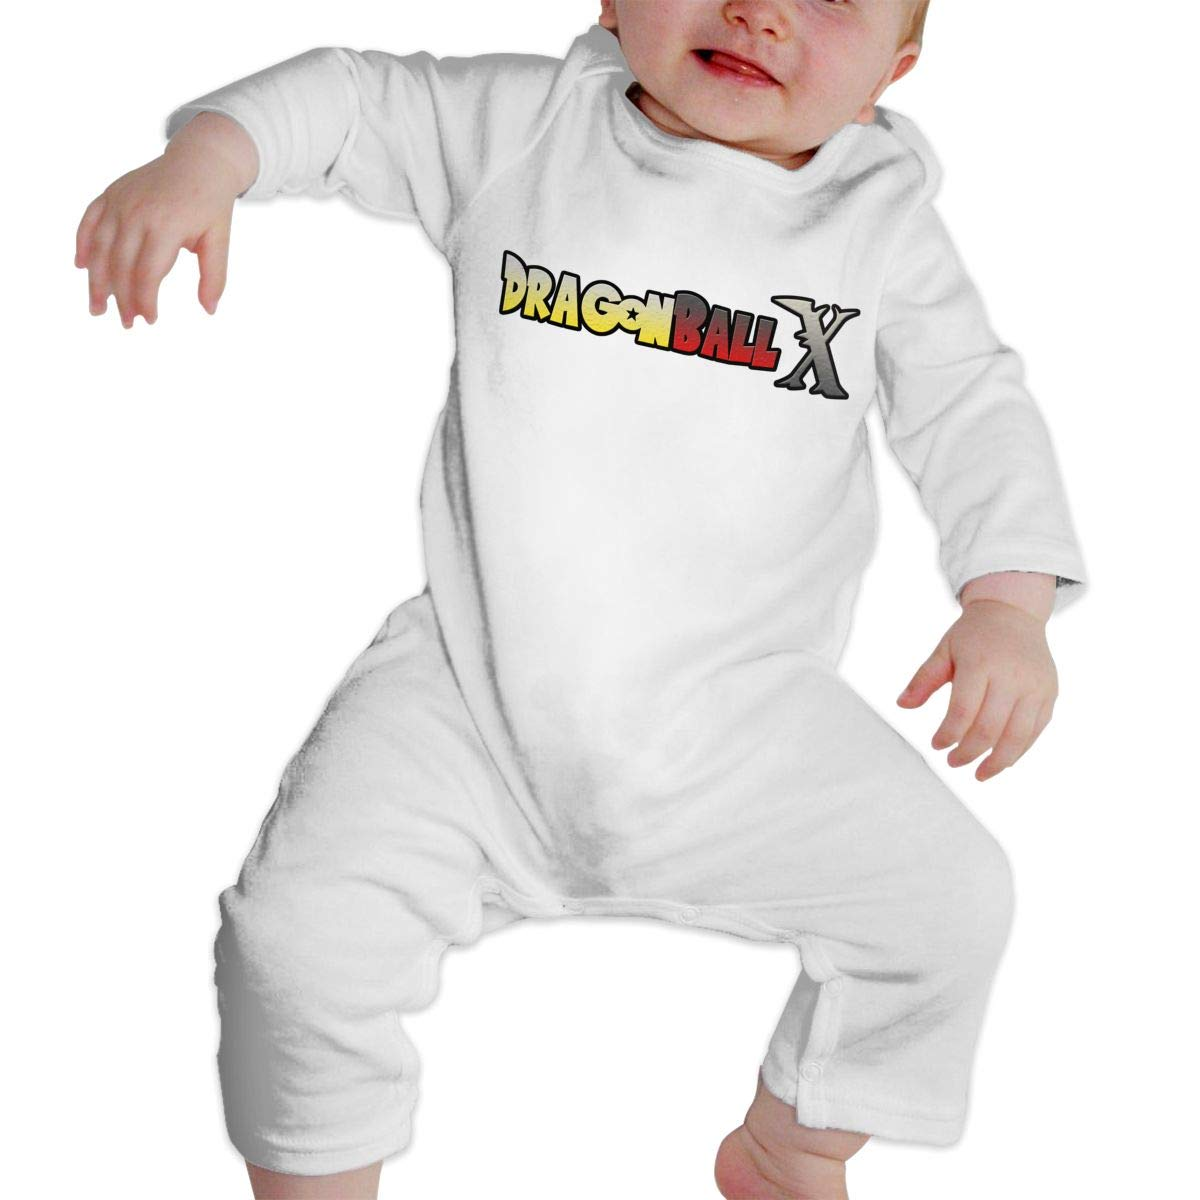 Unisex Baby Crew Neck Long Sleeve Pure Color Onesie Dra/_gon Ball X Crawling Suit White 43